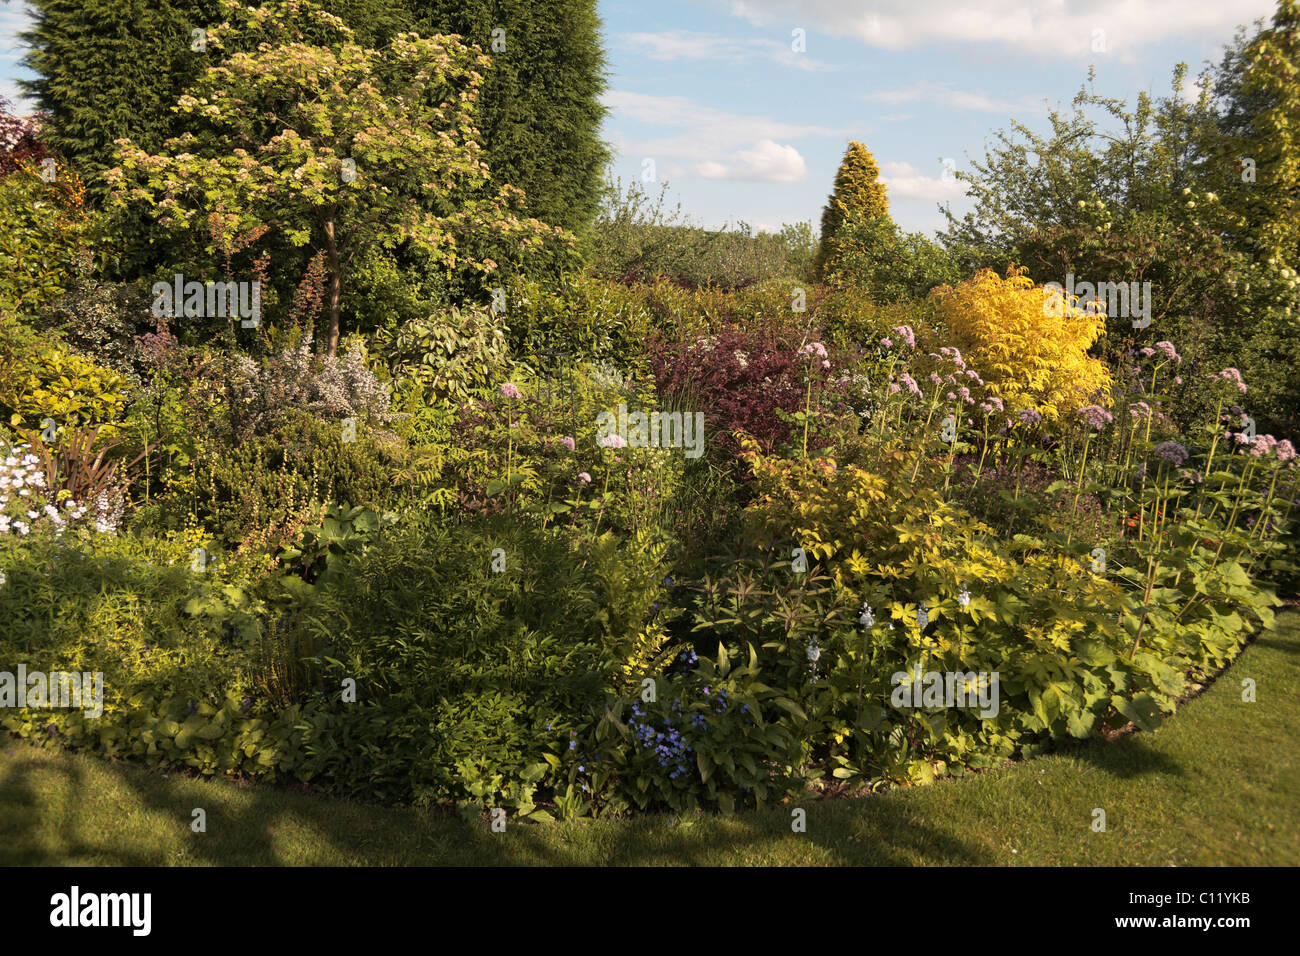 Herbaceous border and shrubs in a domestic suburban back garden ...